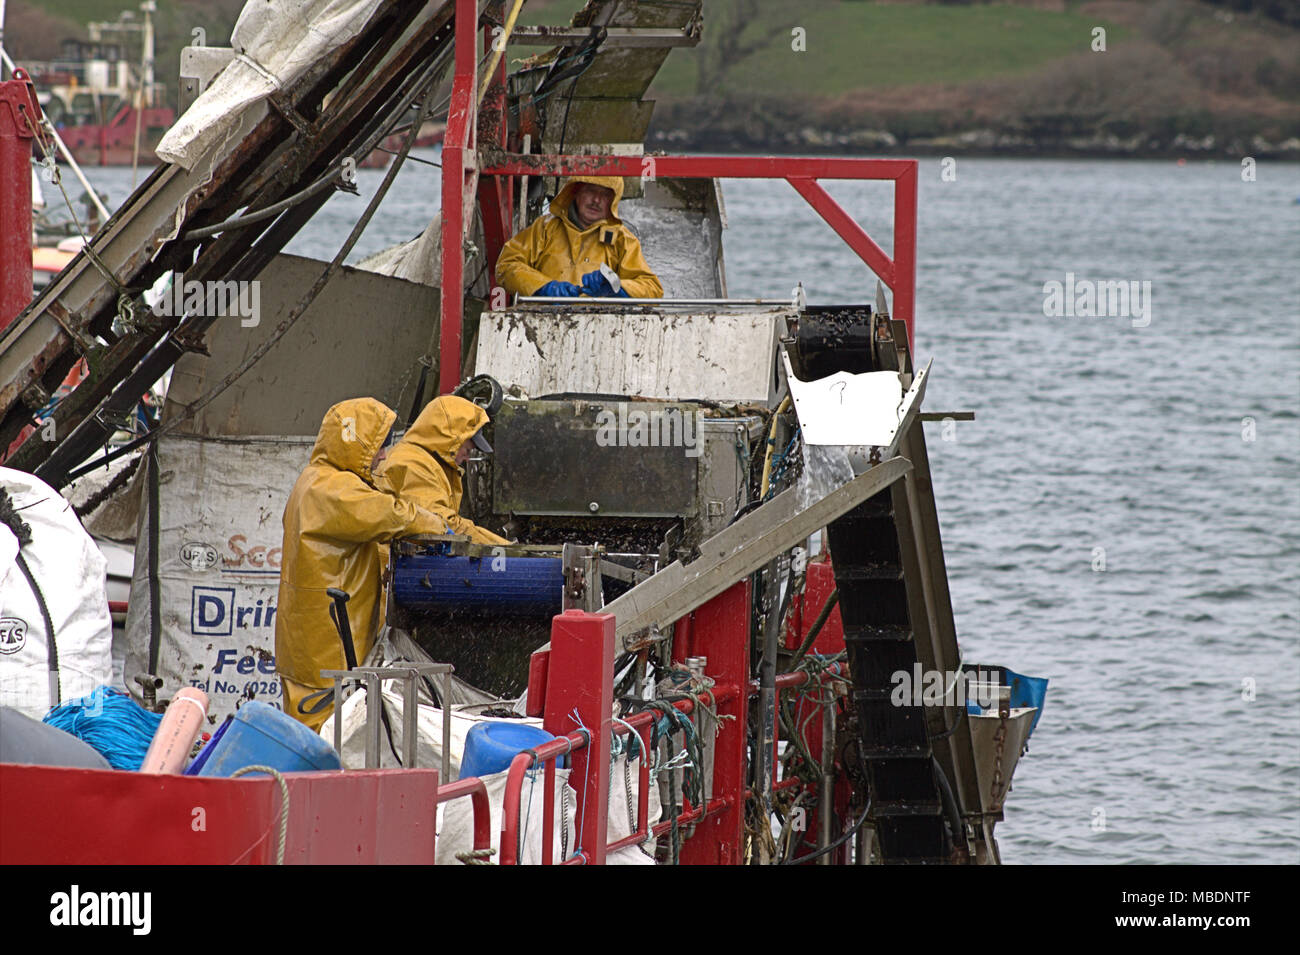 irish-fishermen-on-a-mussel-barge-picking-through-the-haul-of-mussels-later-to-be-graded-and-cleaned-before-being-shipped-to-market-all-over-ireland-MBDNTF.jpg